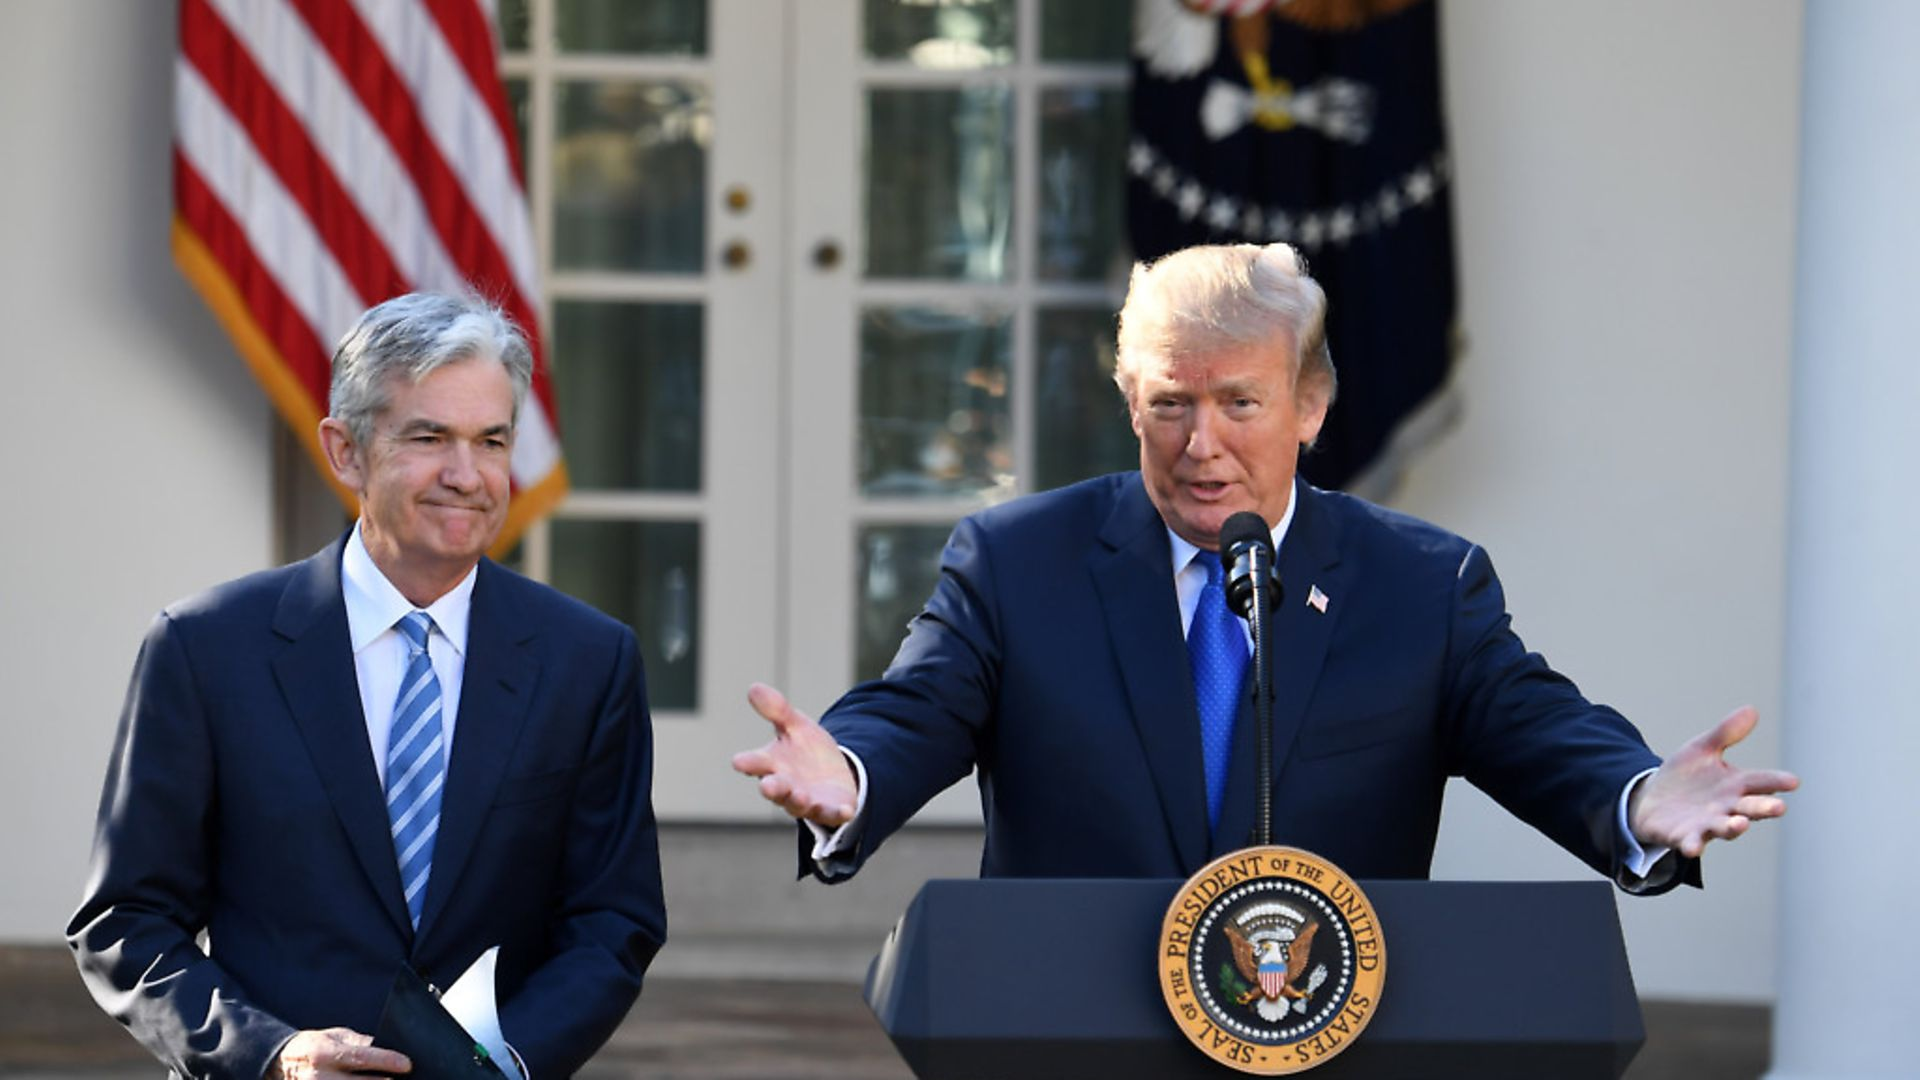 U.S. President Donald Trump (R) and Federal Reserve Governor Jerome Powell (Xinhua/Yin Bogu) - Credit: Xinhua News Agency/PA Images